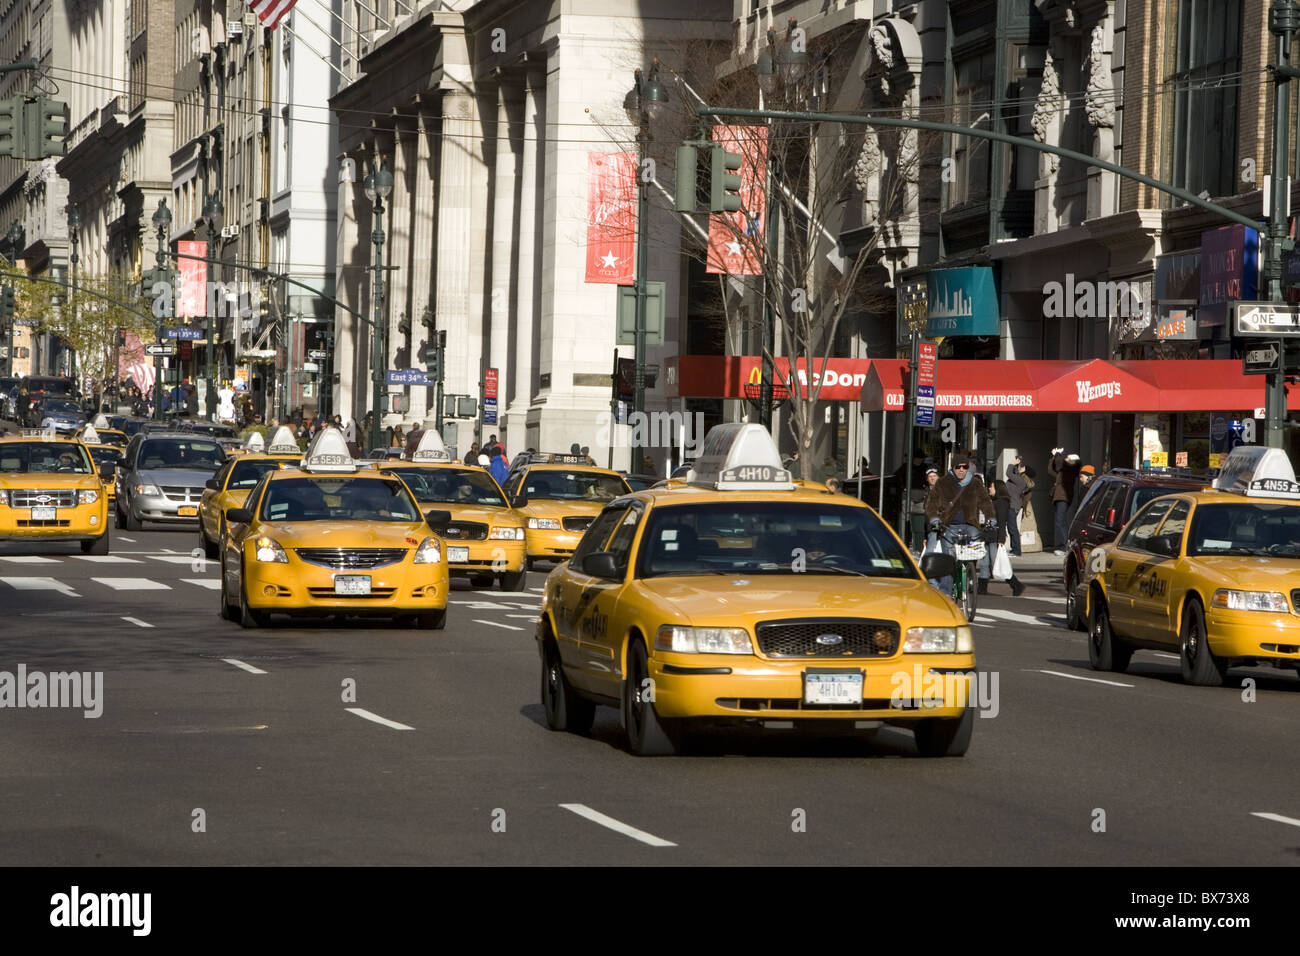 Fleets of yellow cabs dominate 5th Avenue in New York City. - Stock Image